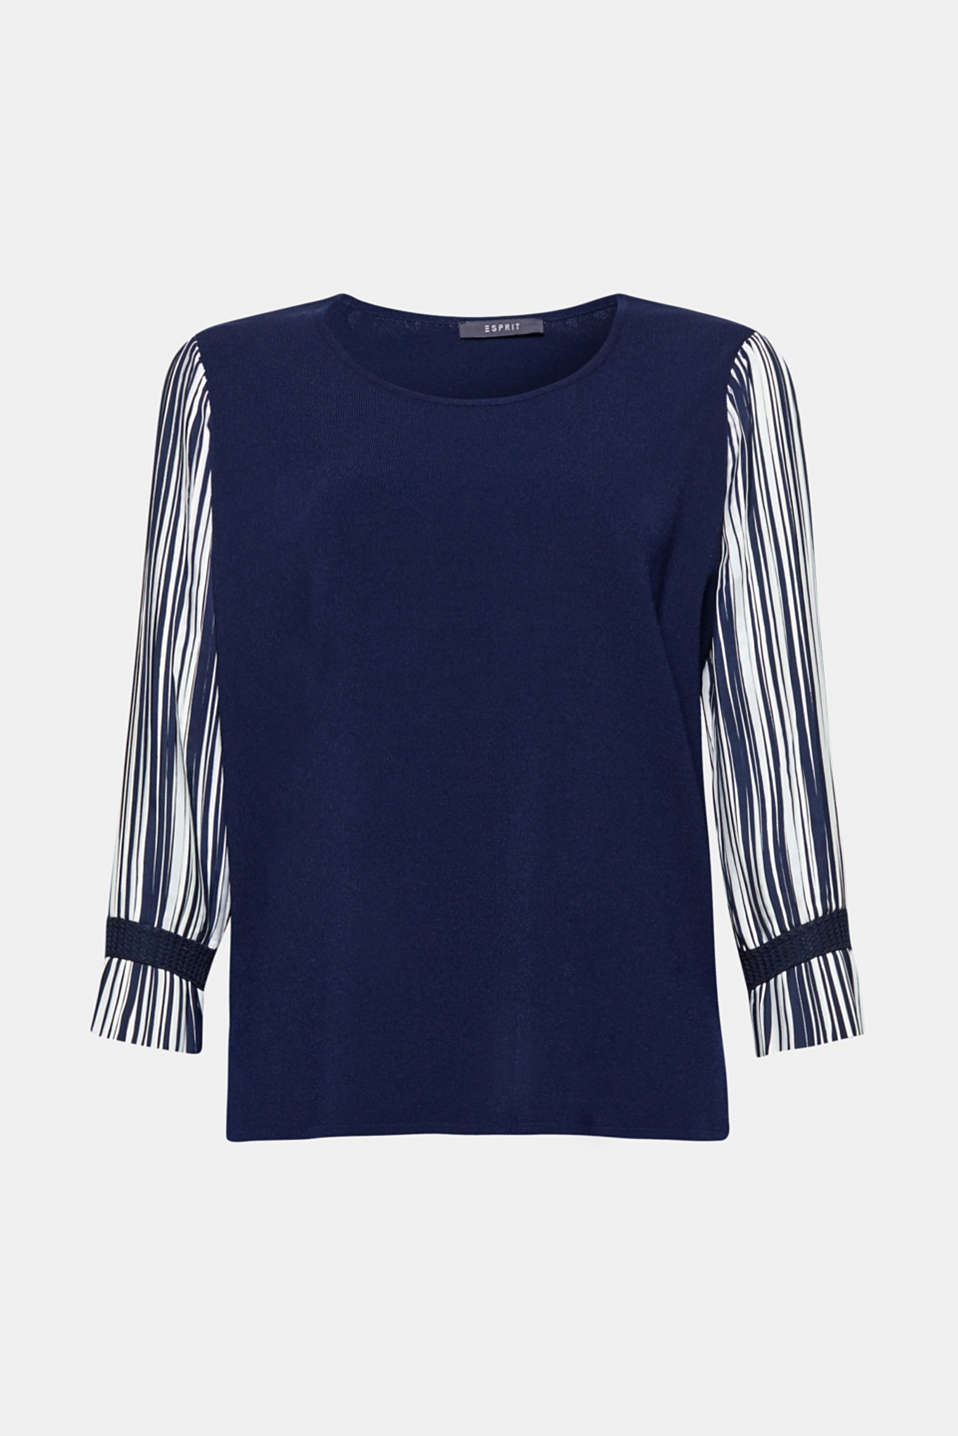 Plain meets stripes, smooth meets pleats: this material mix jumper is all about contrasts!